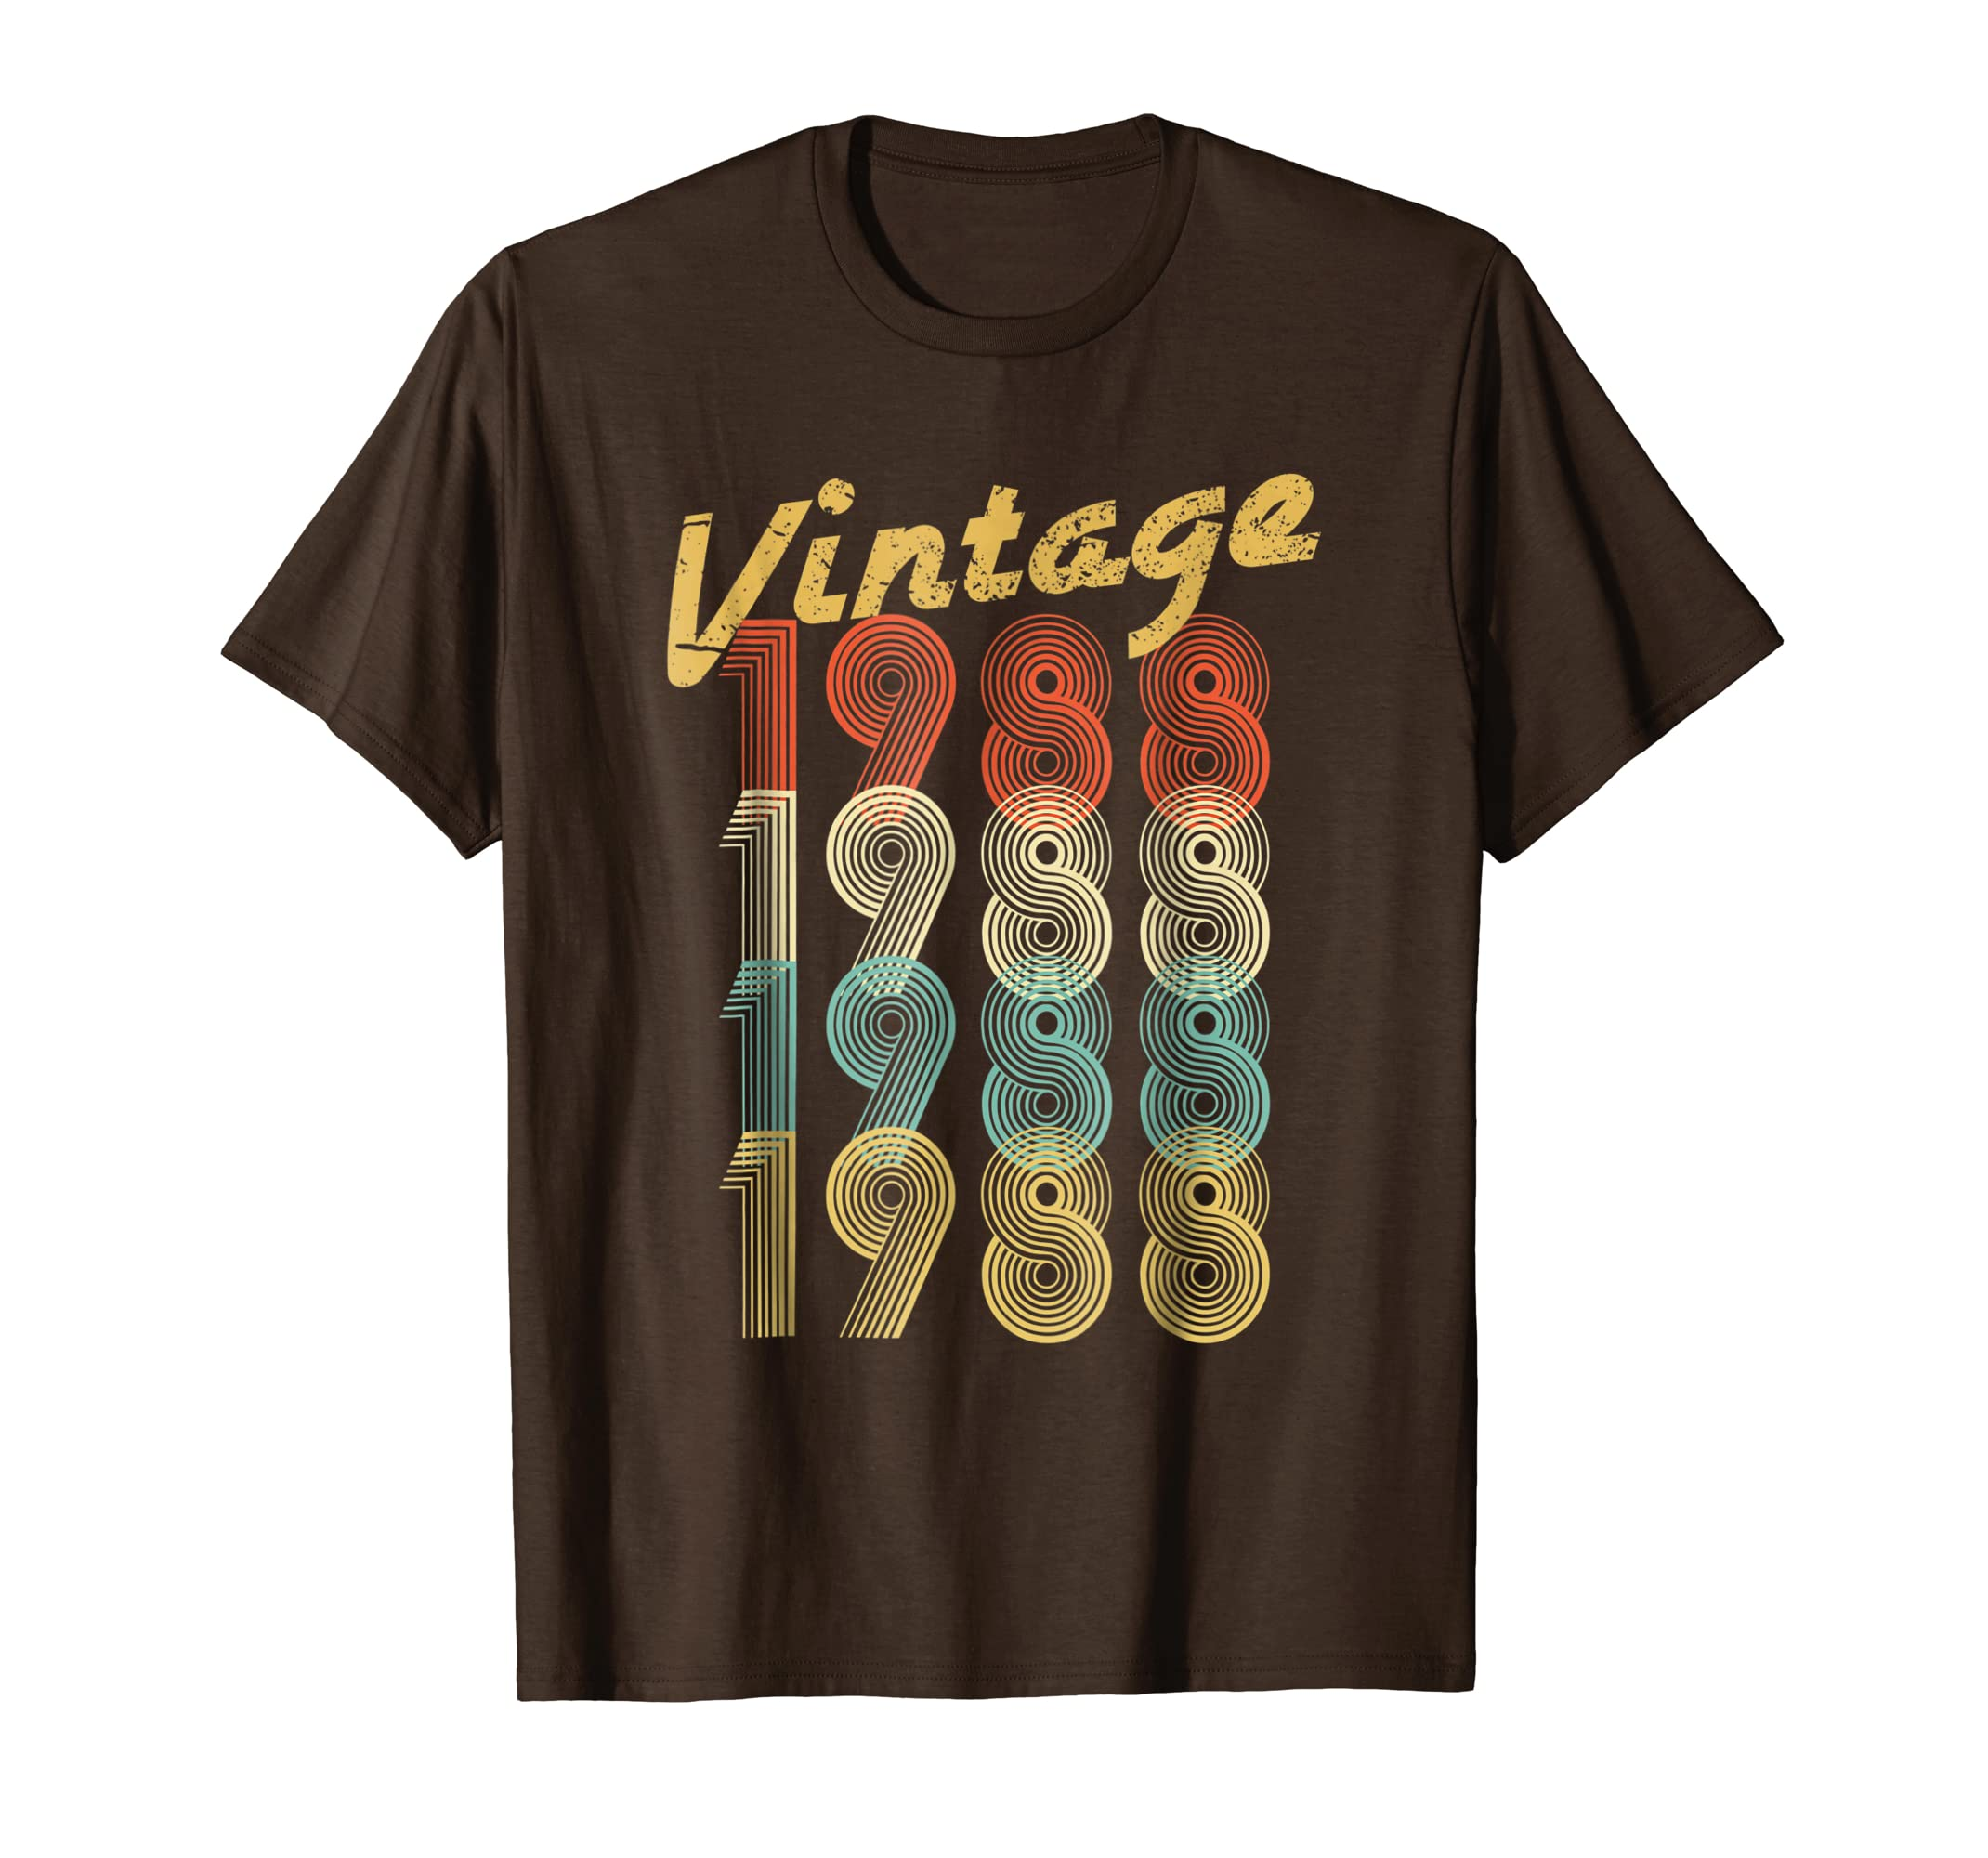 1988 Vintage Funny 30th Birthday Gift Shirt For Him or Her-Rose